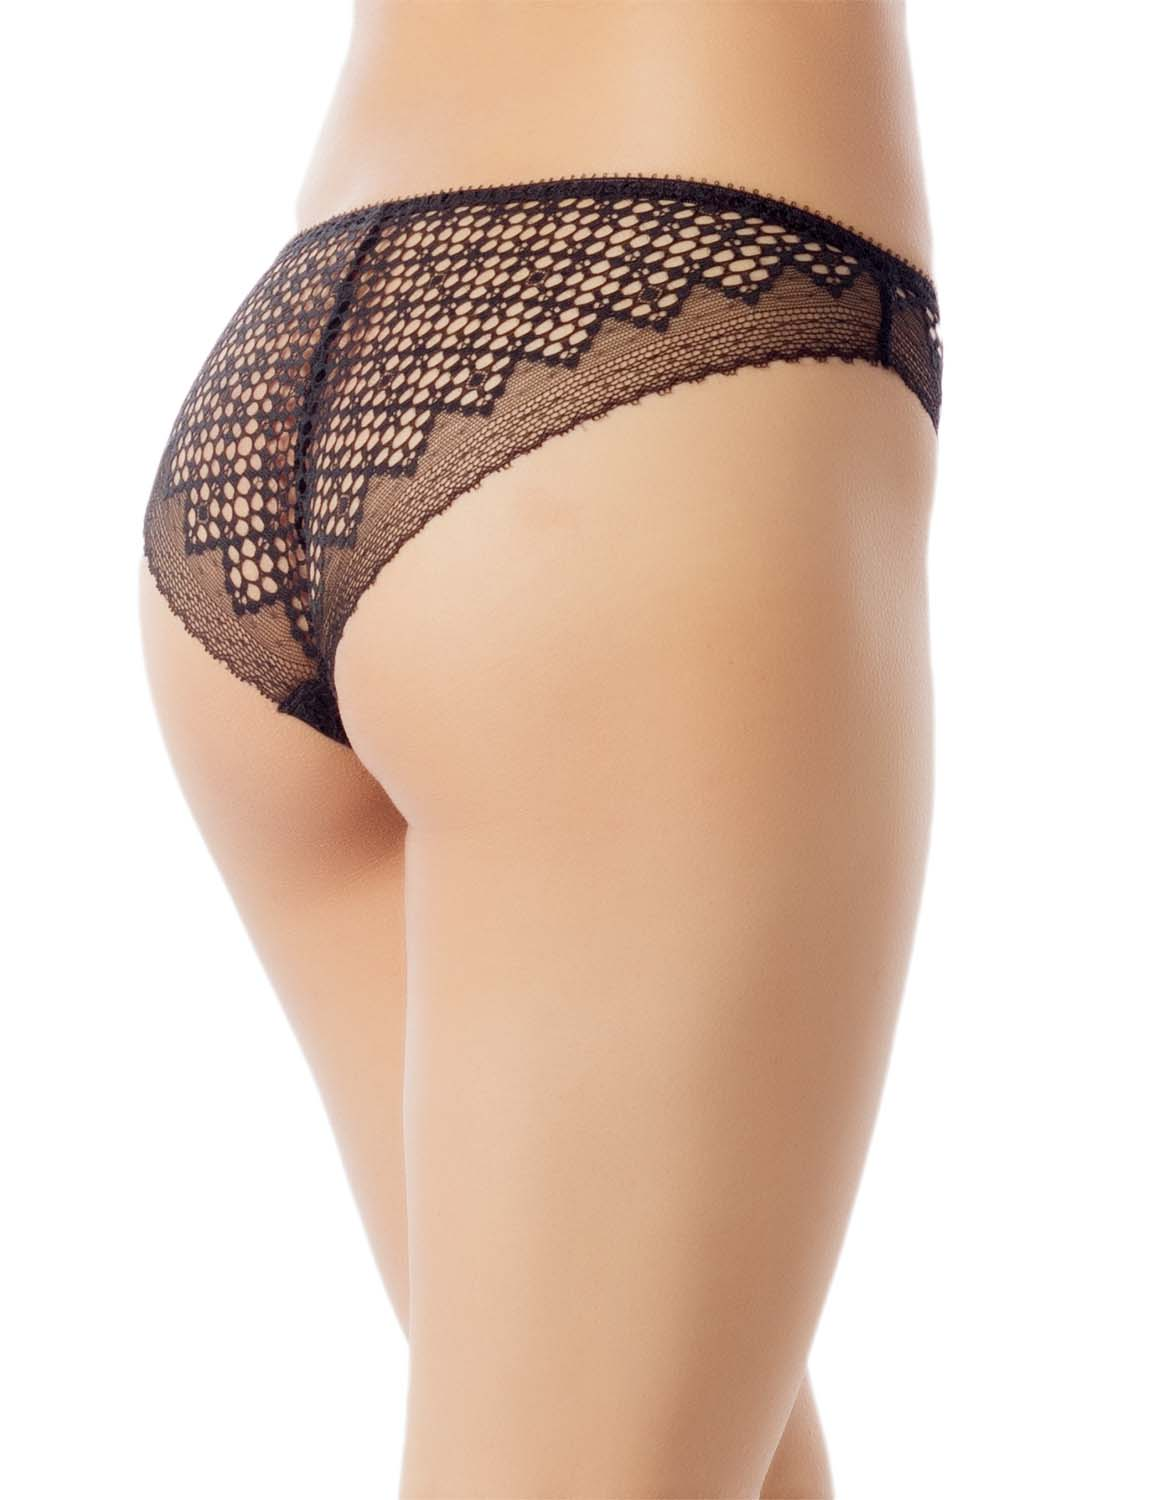 Women's See-Through Sheer Sexy Laces Cotton Comfort Low Rise Brief Panty, Size: L, Black